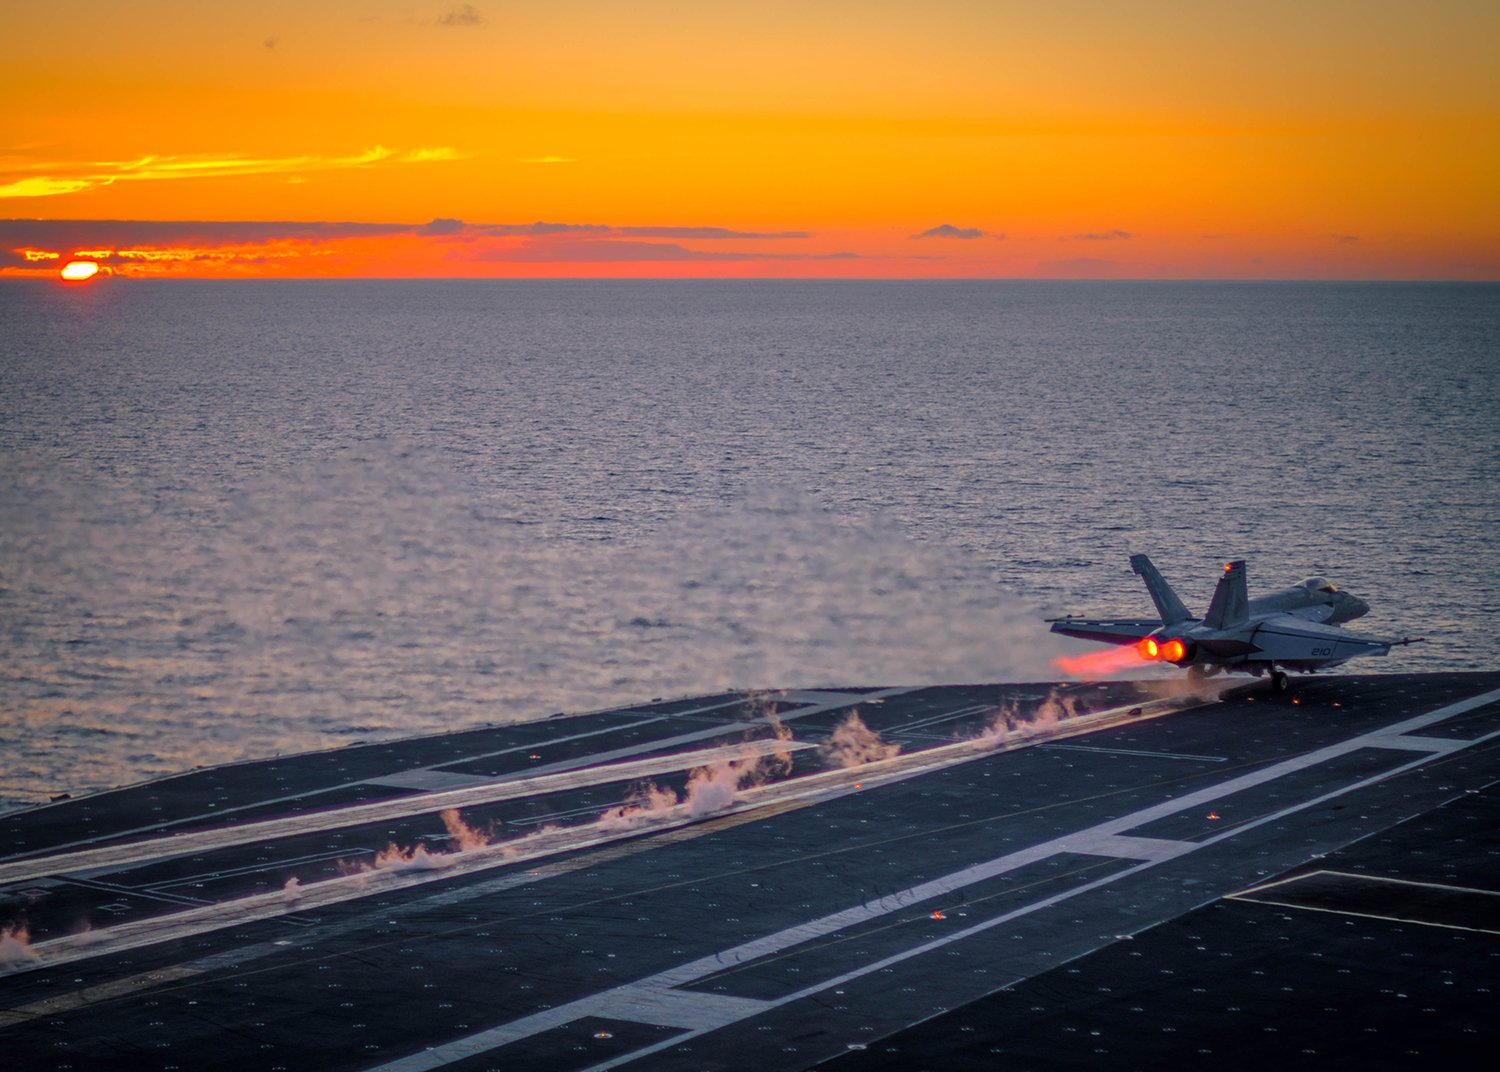 An F/A-18E Super Hornet assigned to the Kestrels of Strike Fighter Squadron (VFA) 137 launches at sunset from the flight deck of the aircraft carrier USS Ronald Reagan (CVN 76) on July 10, 2015. US Navy photo.